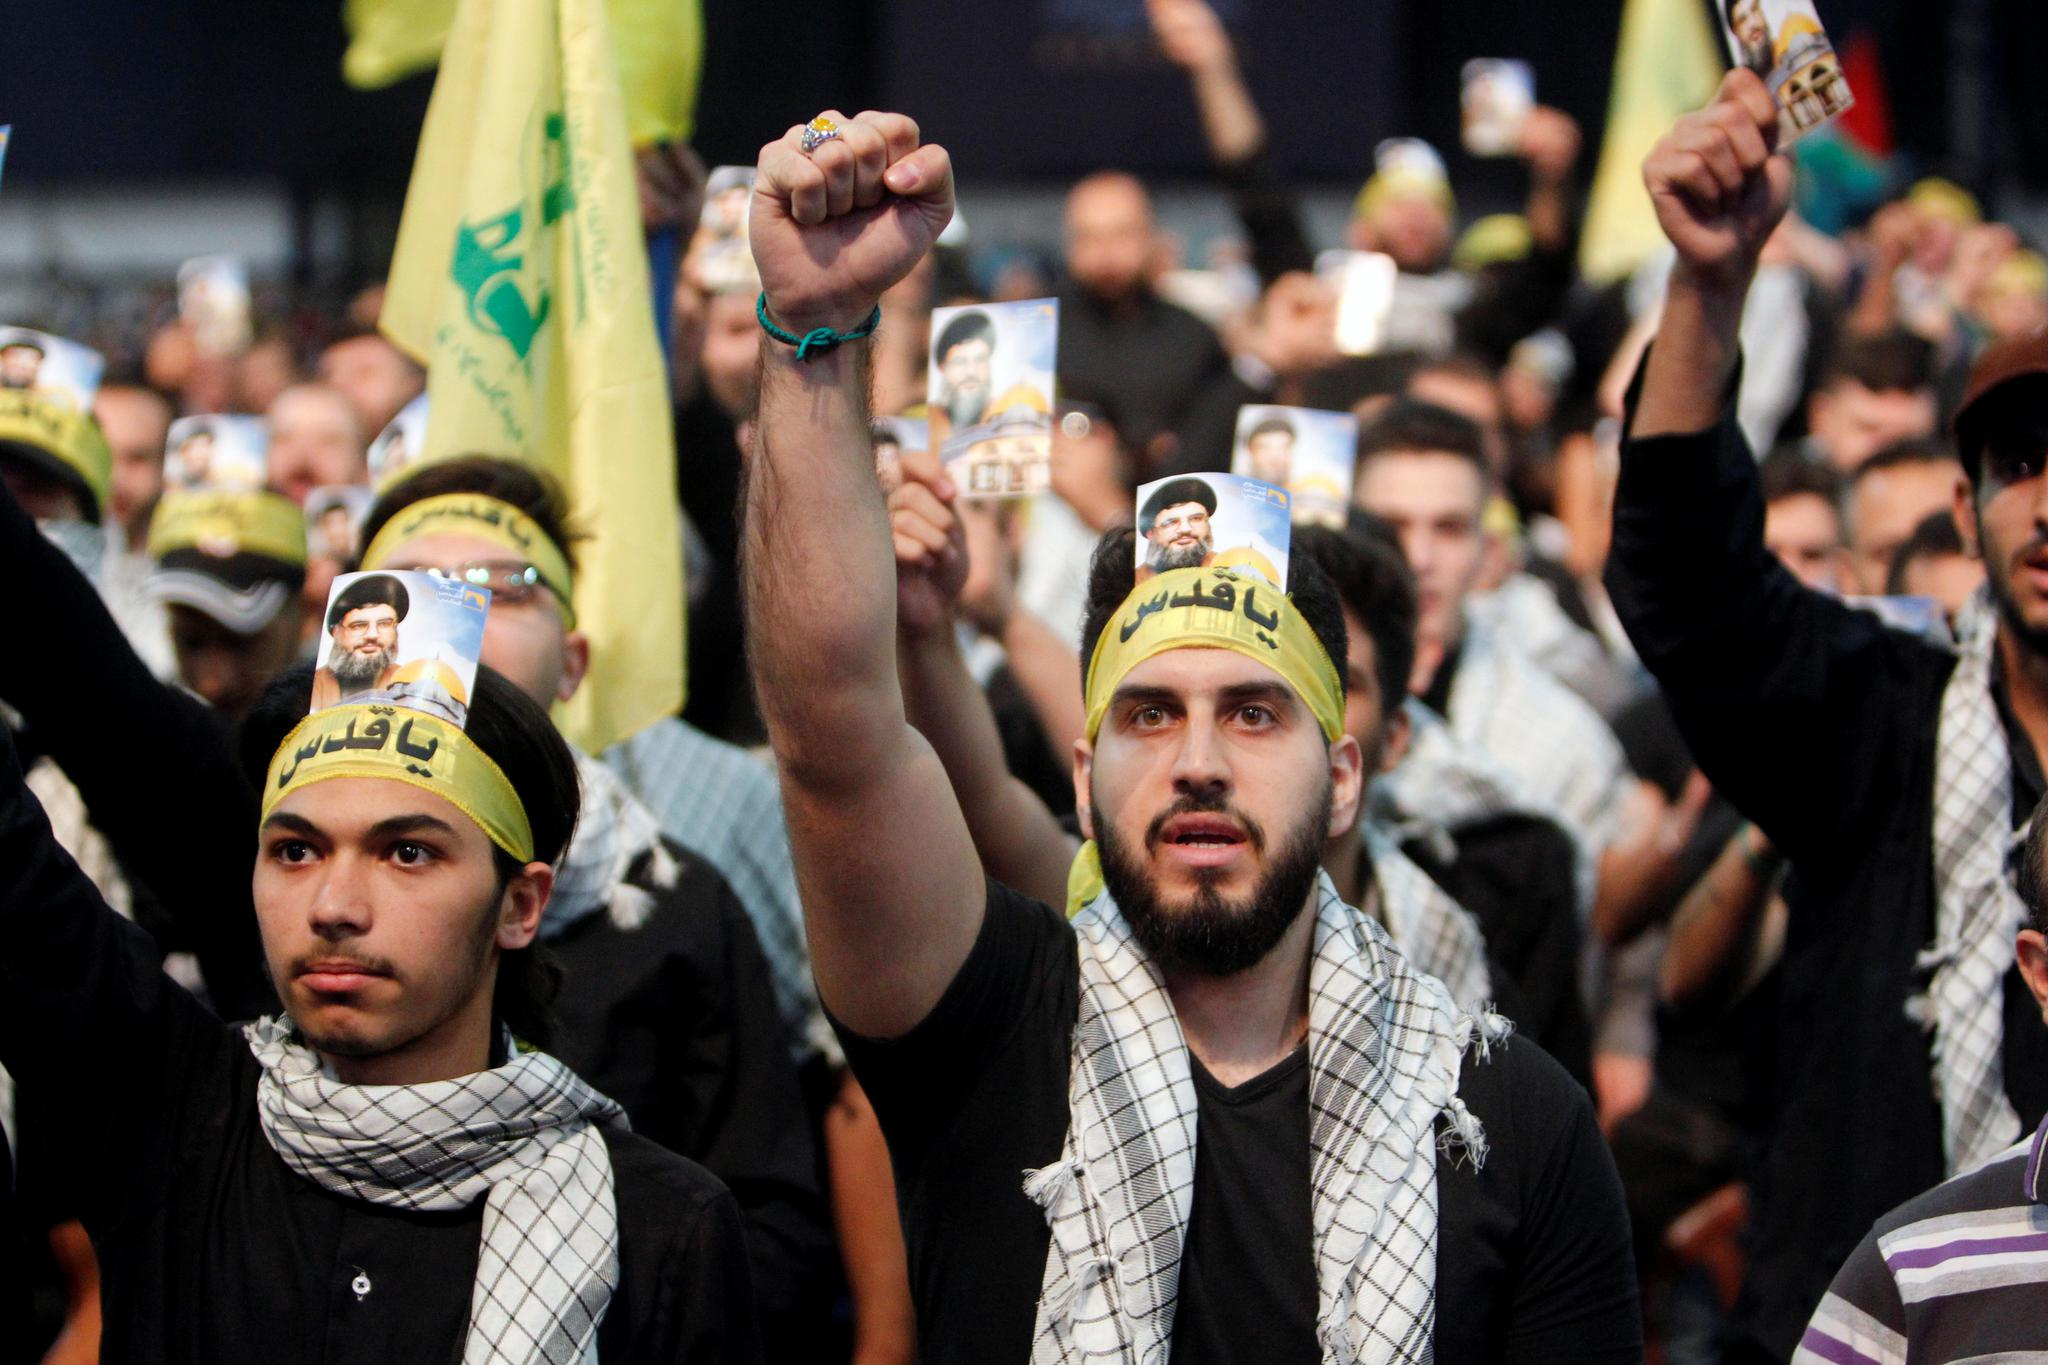 Supporters of Lebanon's Hezbollah leader Sayyed Hassan Nasrallah chant slogans and gesture during a rally marking Al-Quds day in Beirut's southern suburbs in Lebanon on June 23.